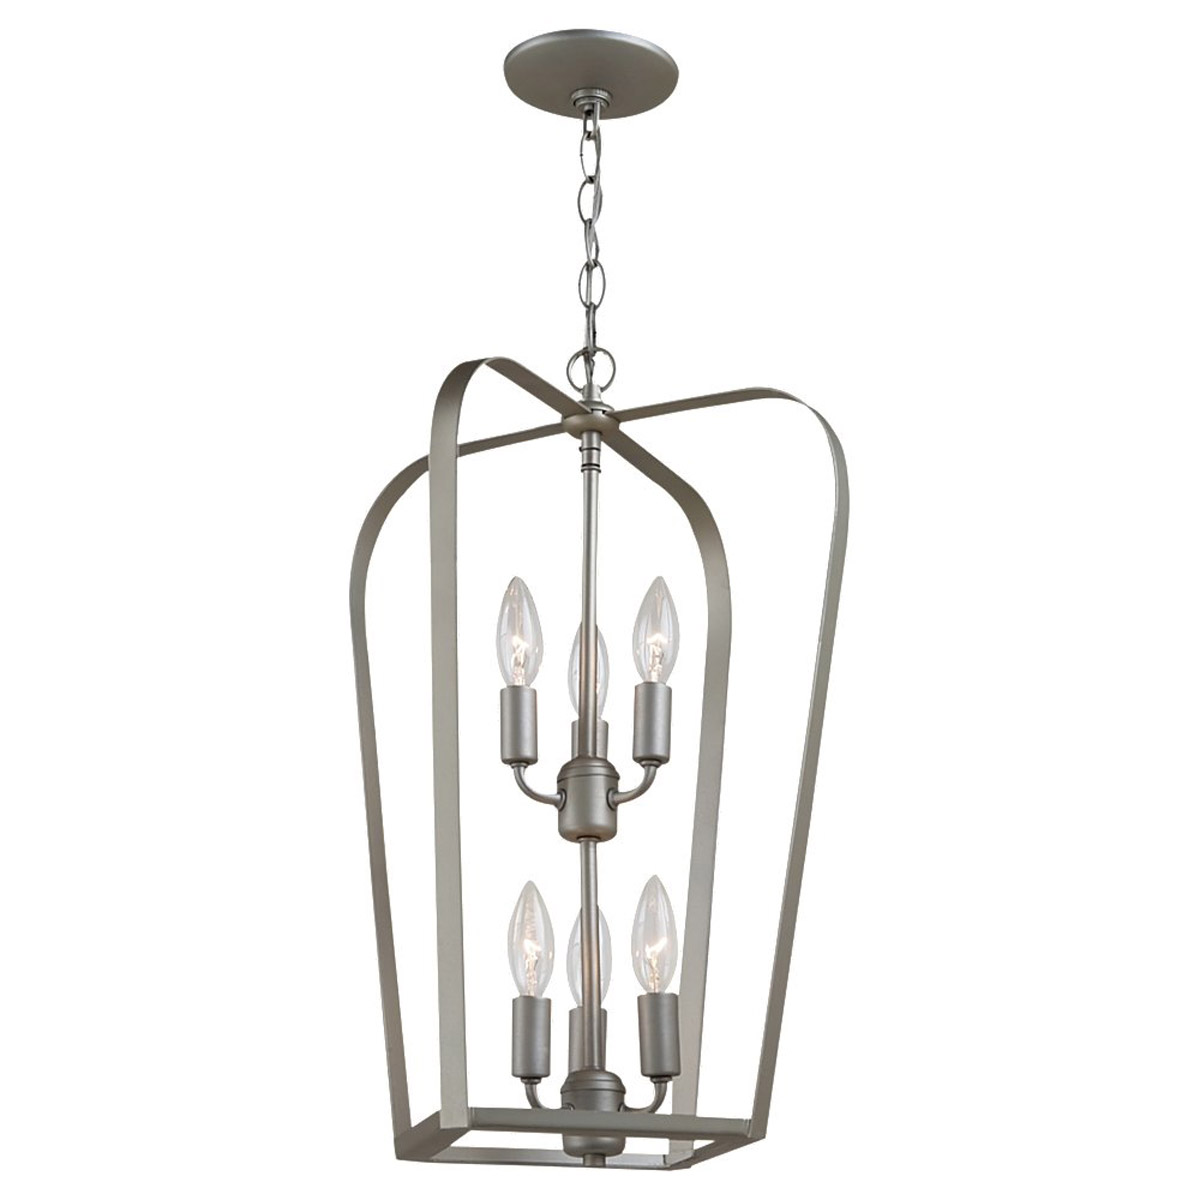 Sea Gull Lighting Windgate 6 Light Foyer Pendant in Painted Brushed Nickel 54941-753 photo